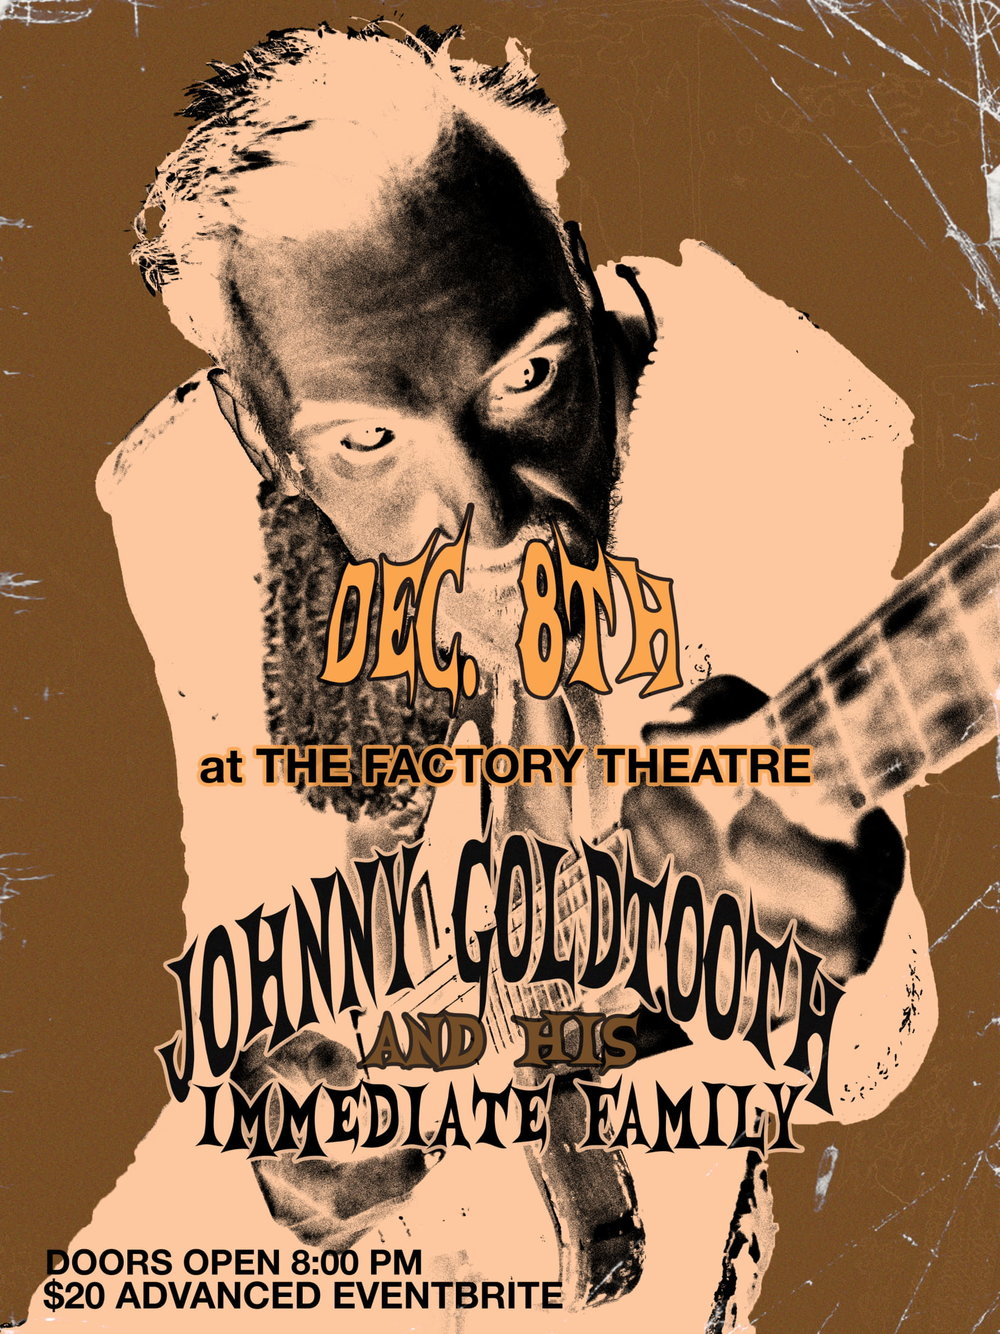 Johnny Goldtooth and His Immediate Family December 8th at the Factory Theatre    TICKETS